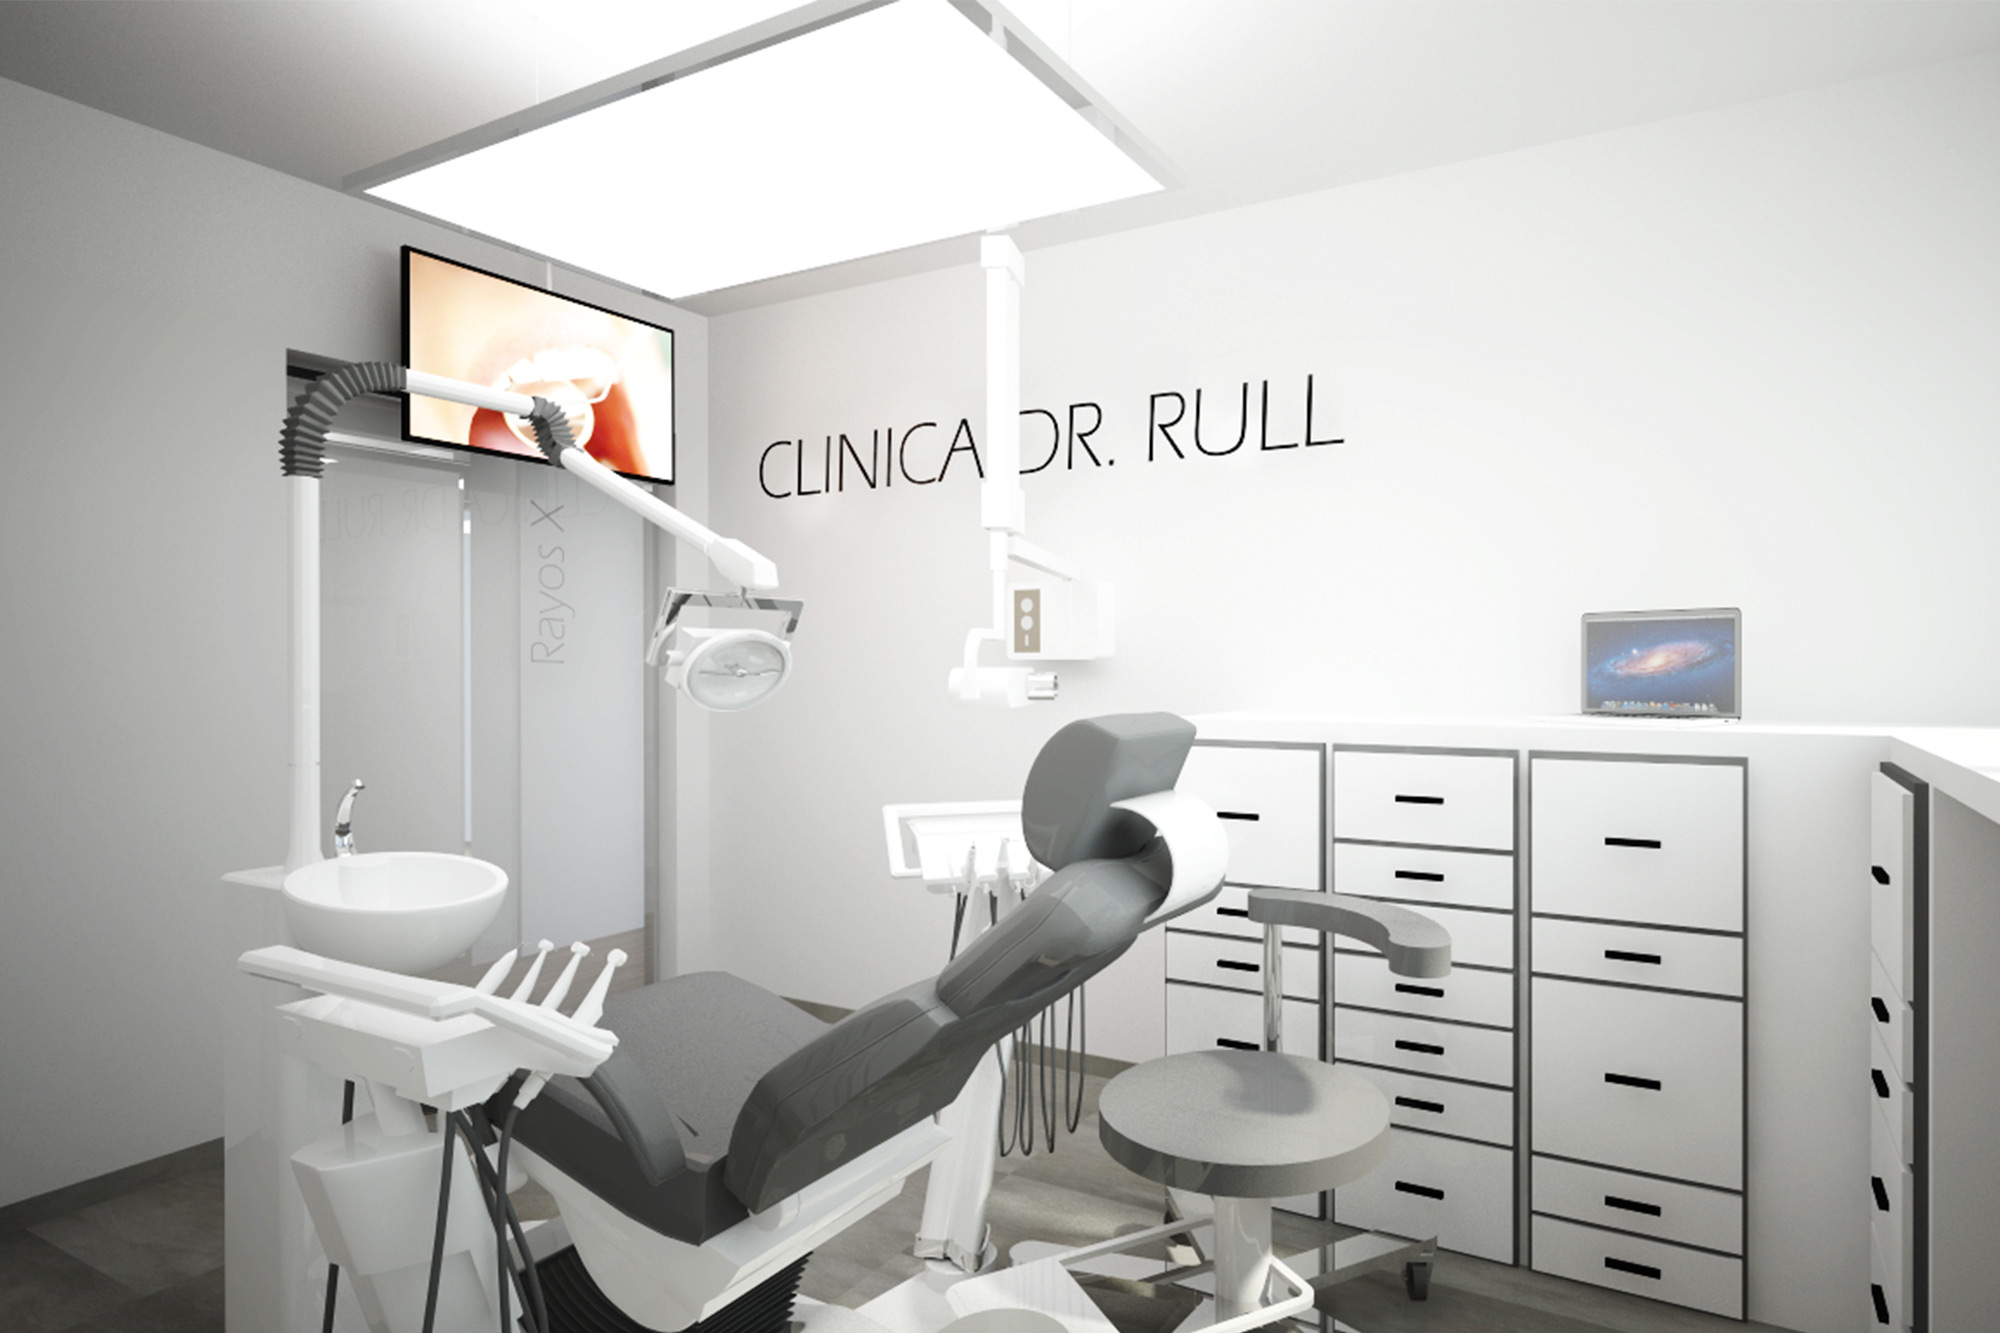 Clinica-salud-Odontologica_-Arquitectura-_-EXarchitects_03